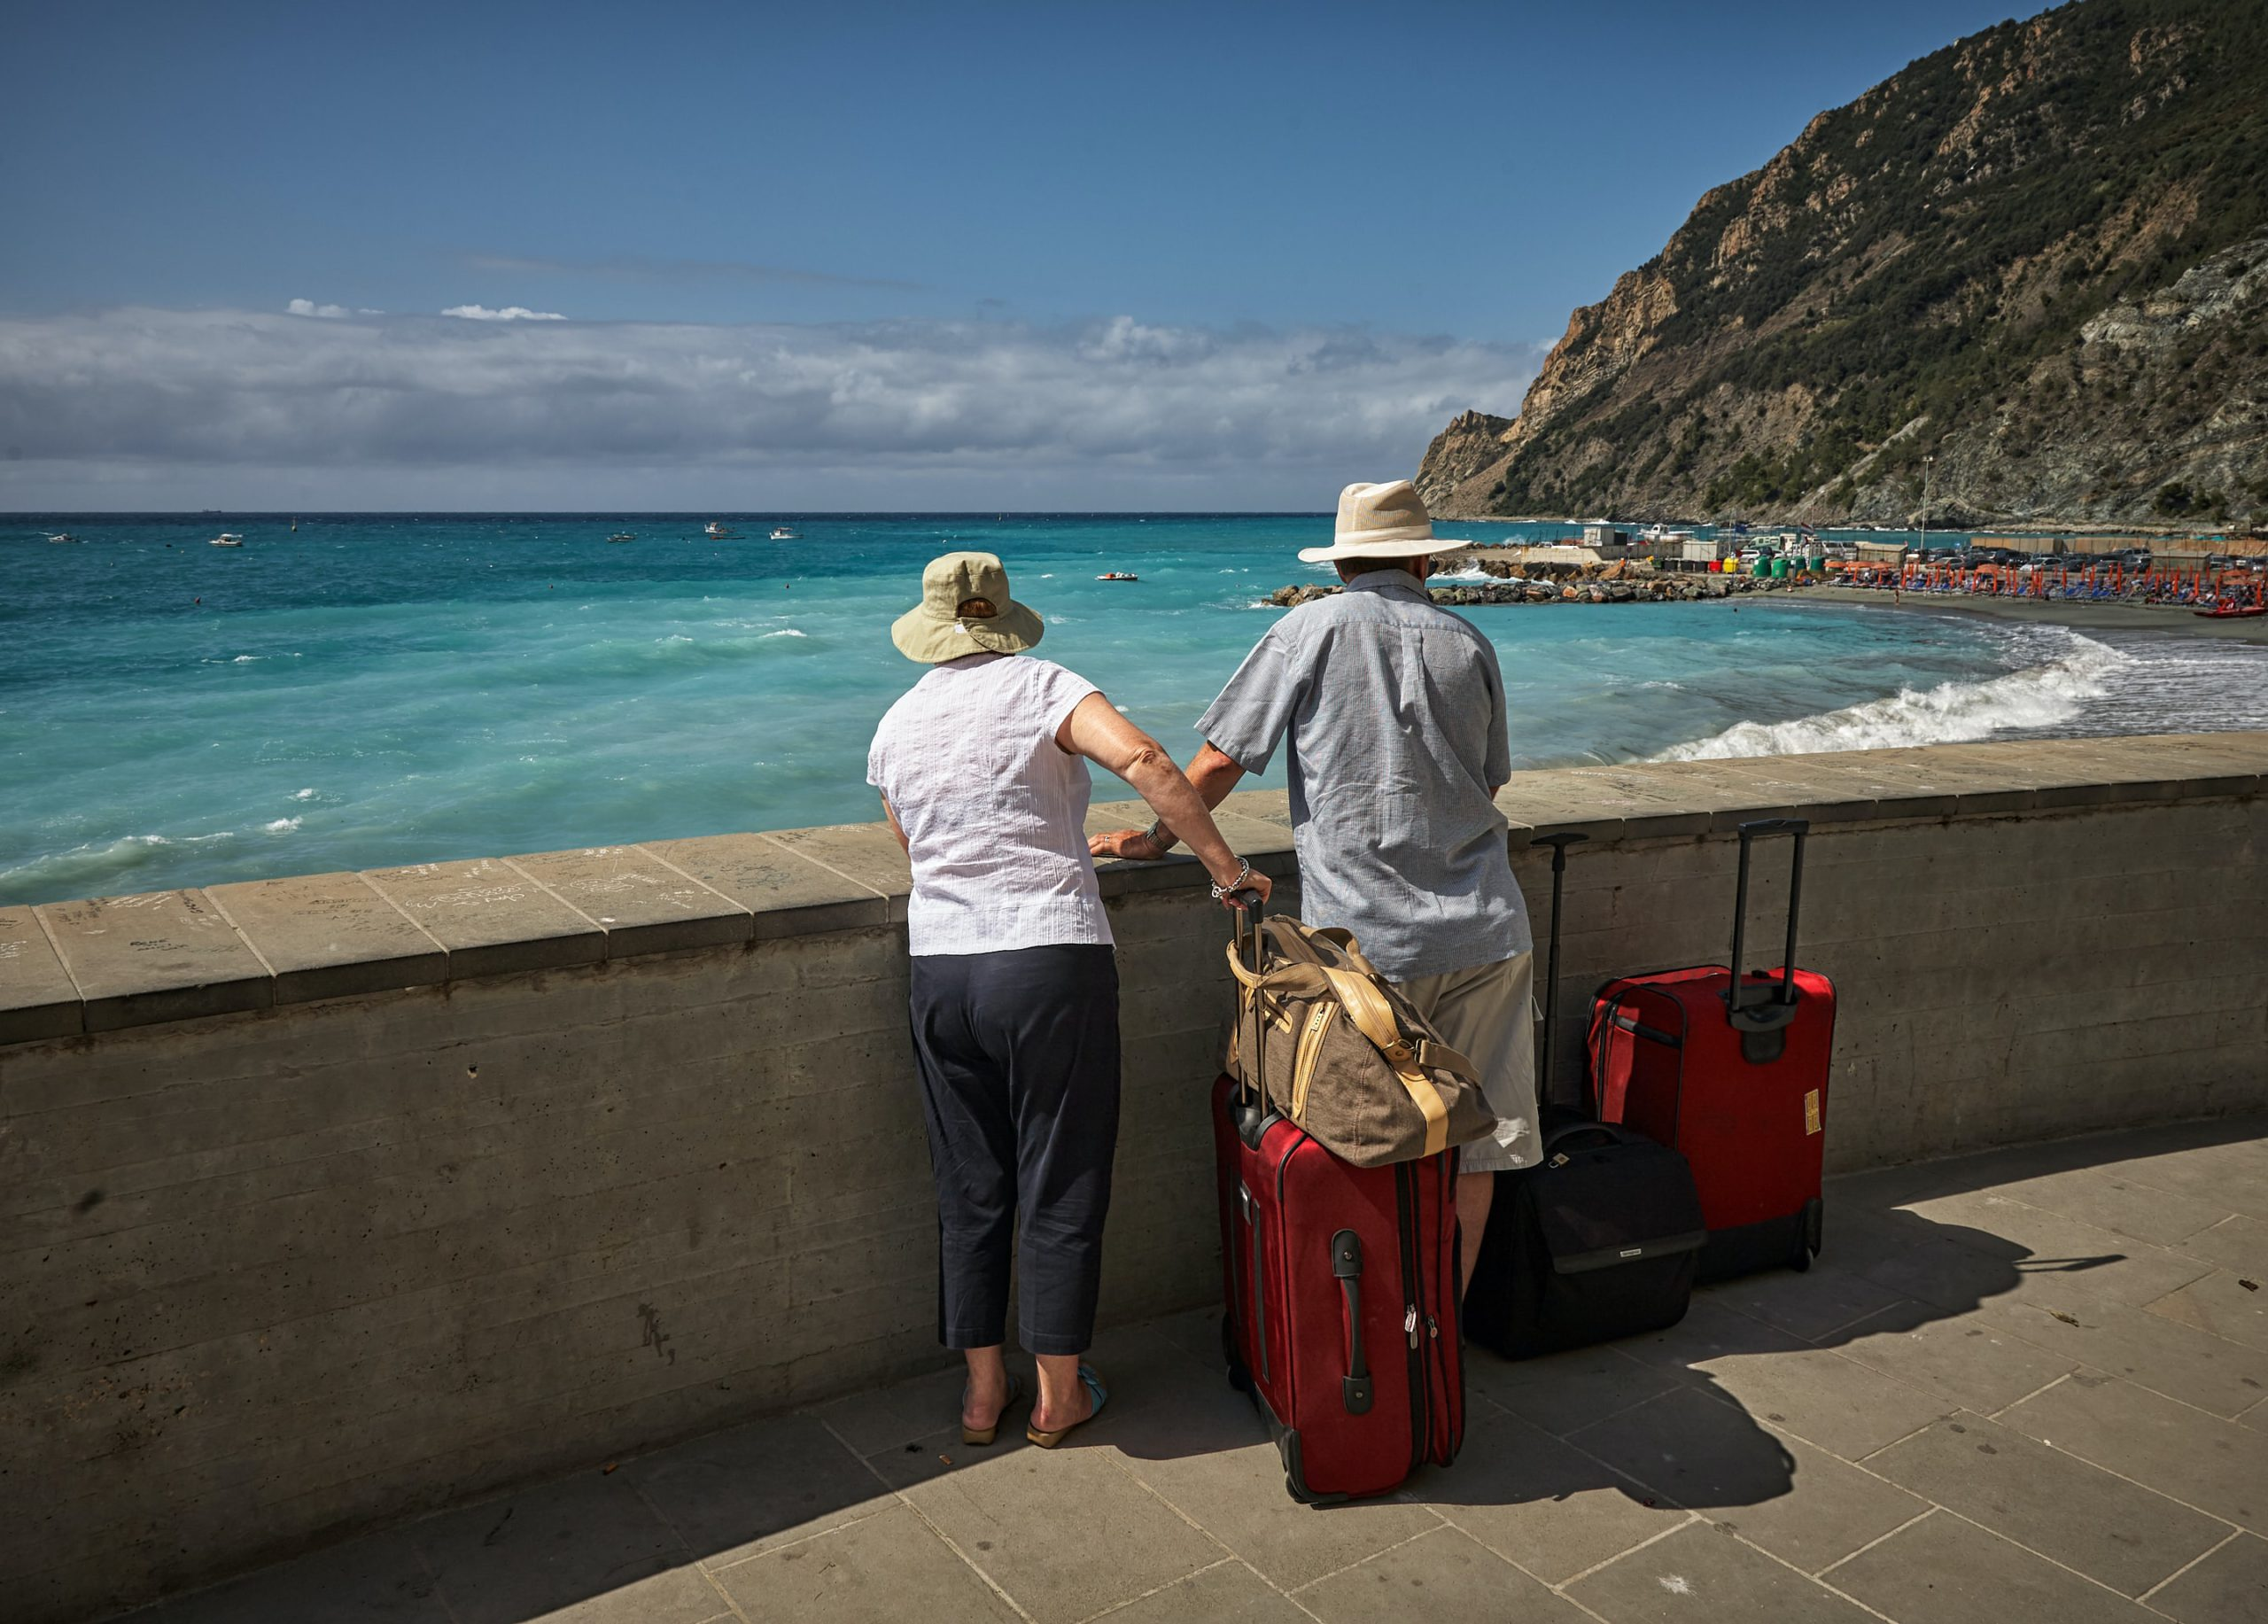 senior travelers with luggage in front of beach